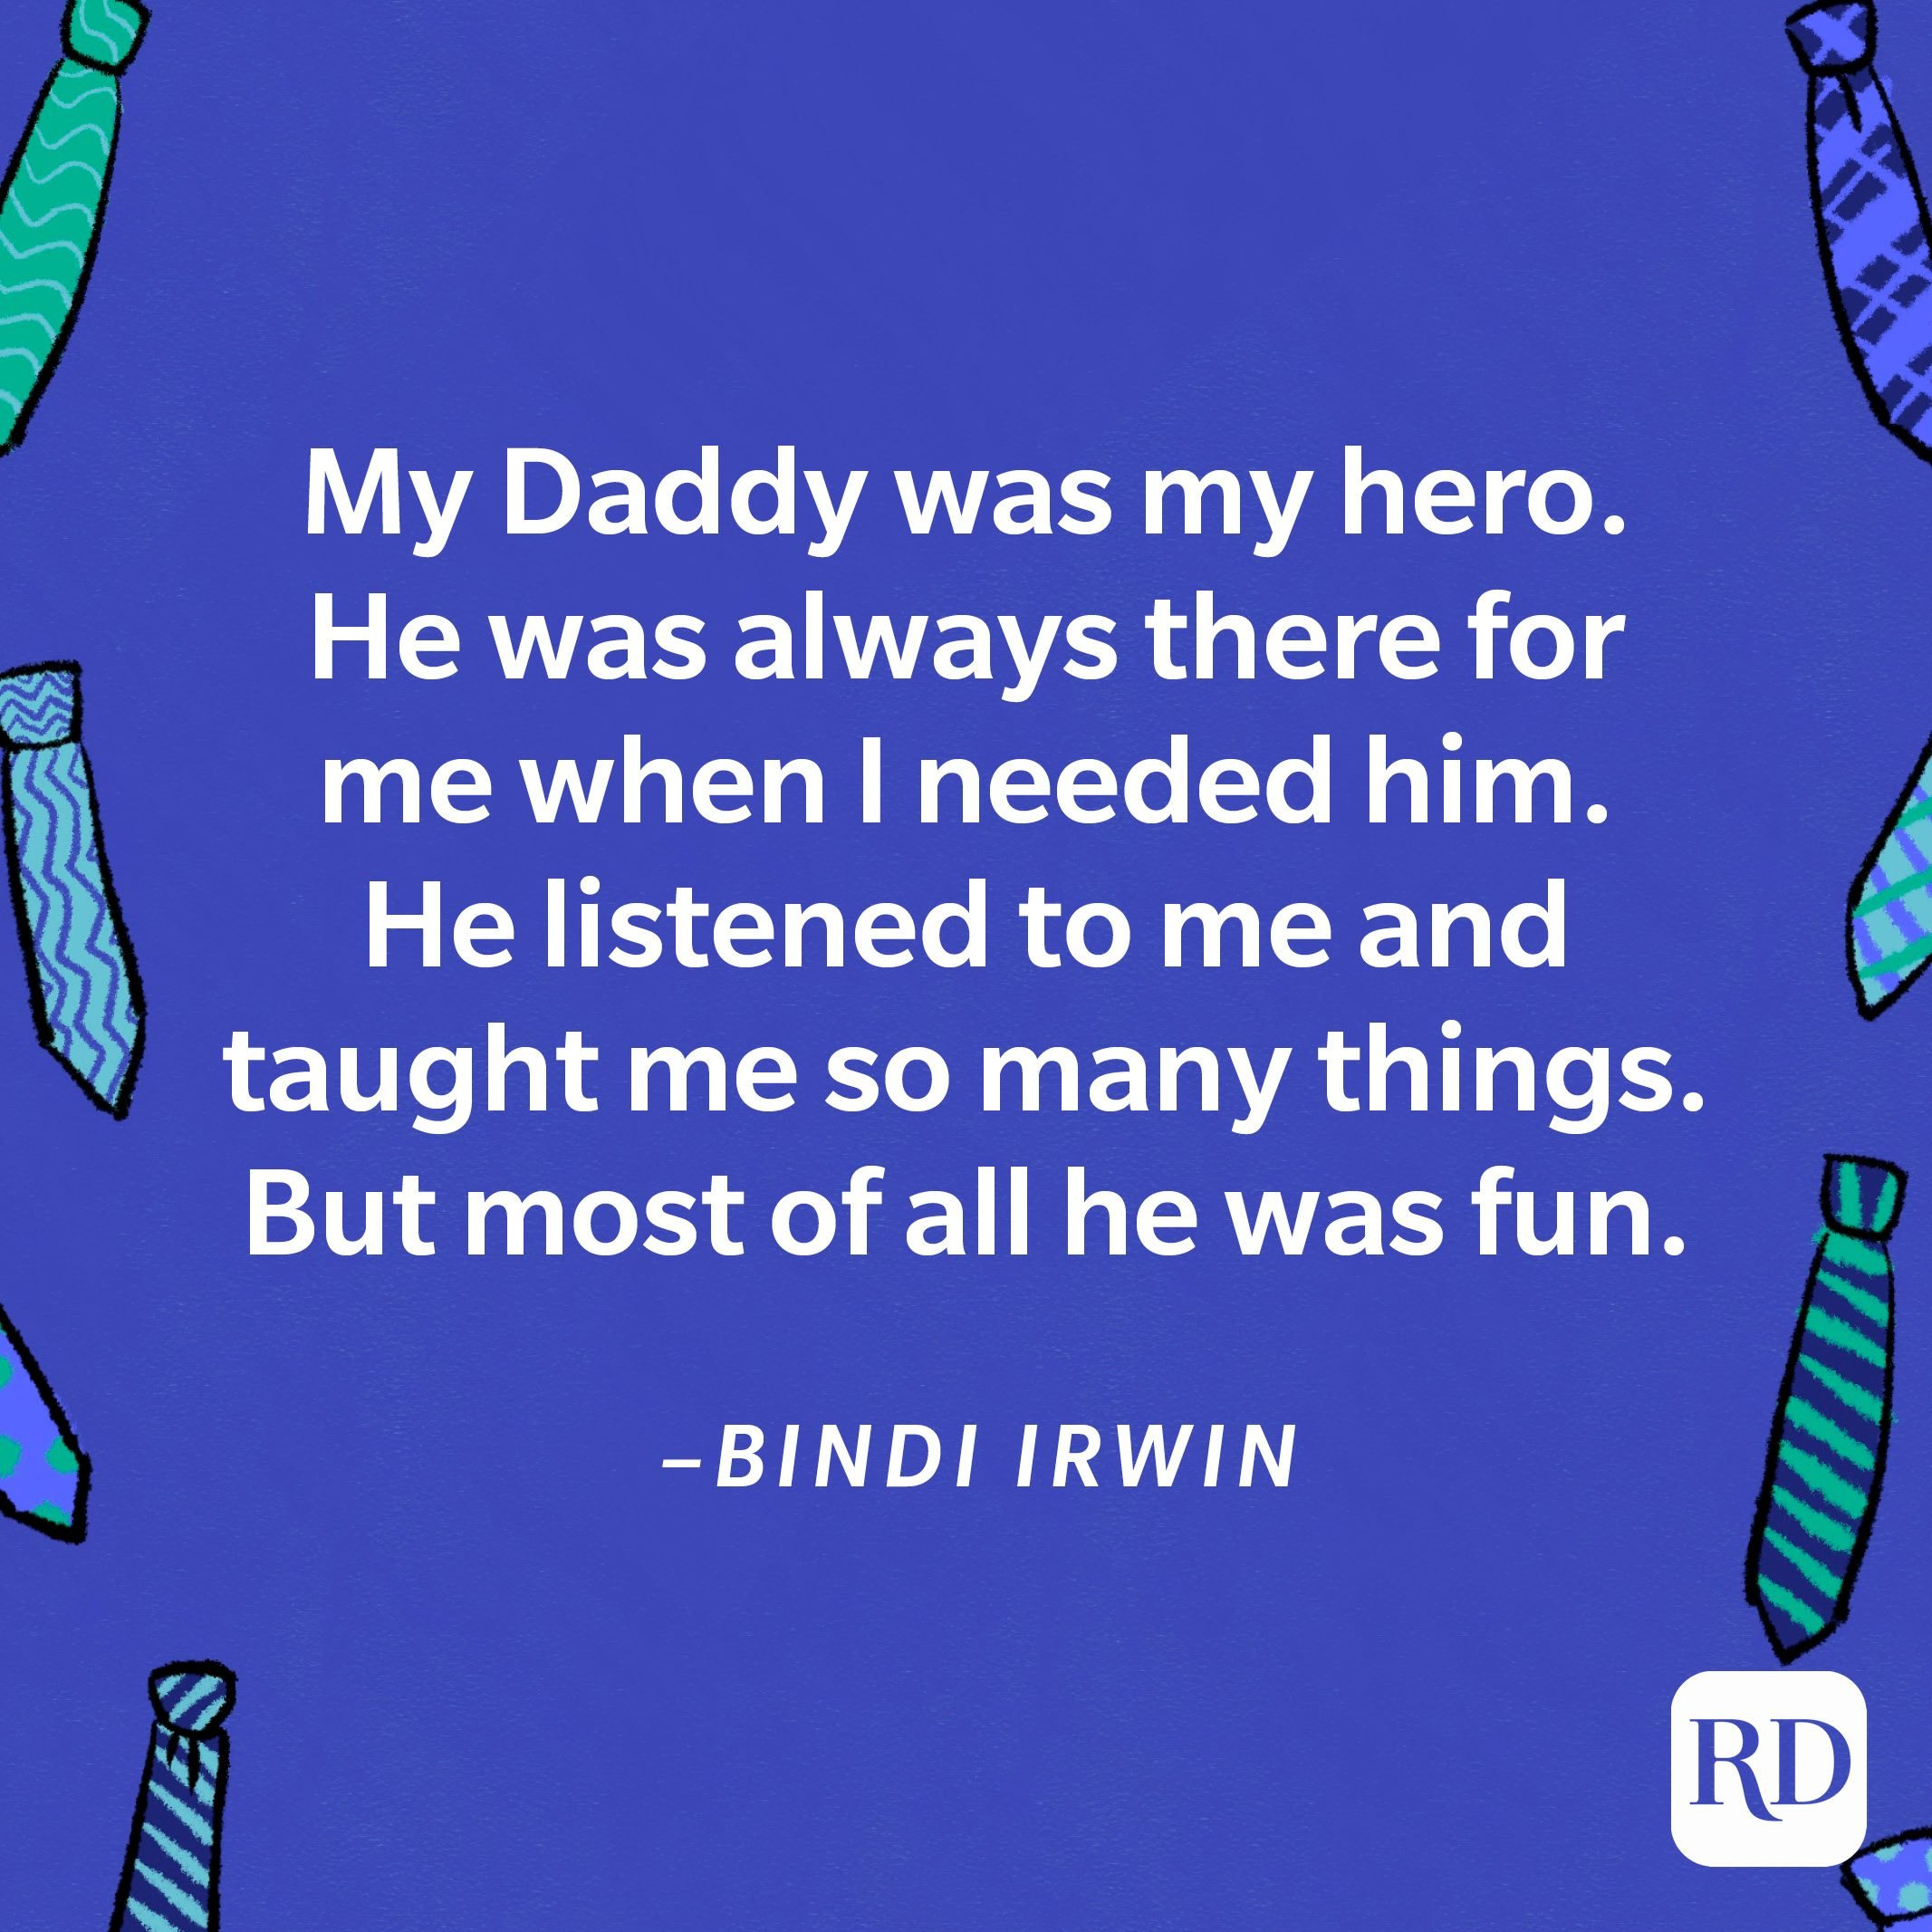 """""""My Daddy was my hero. He was always there for me when I needed him. He listened to me and taught me so many things. But most of all he was fun.""""—Bindi Irwin 16"""